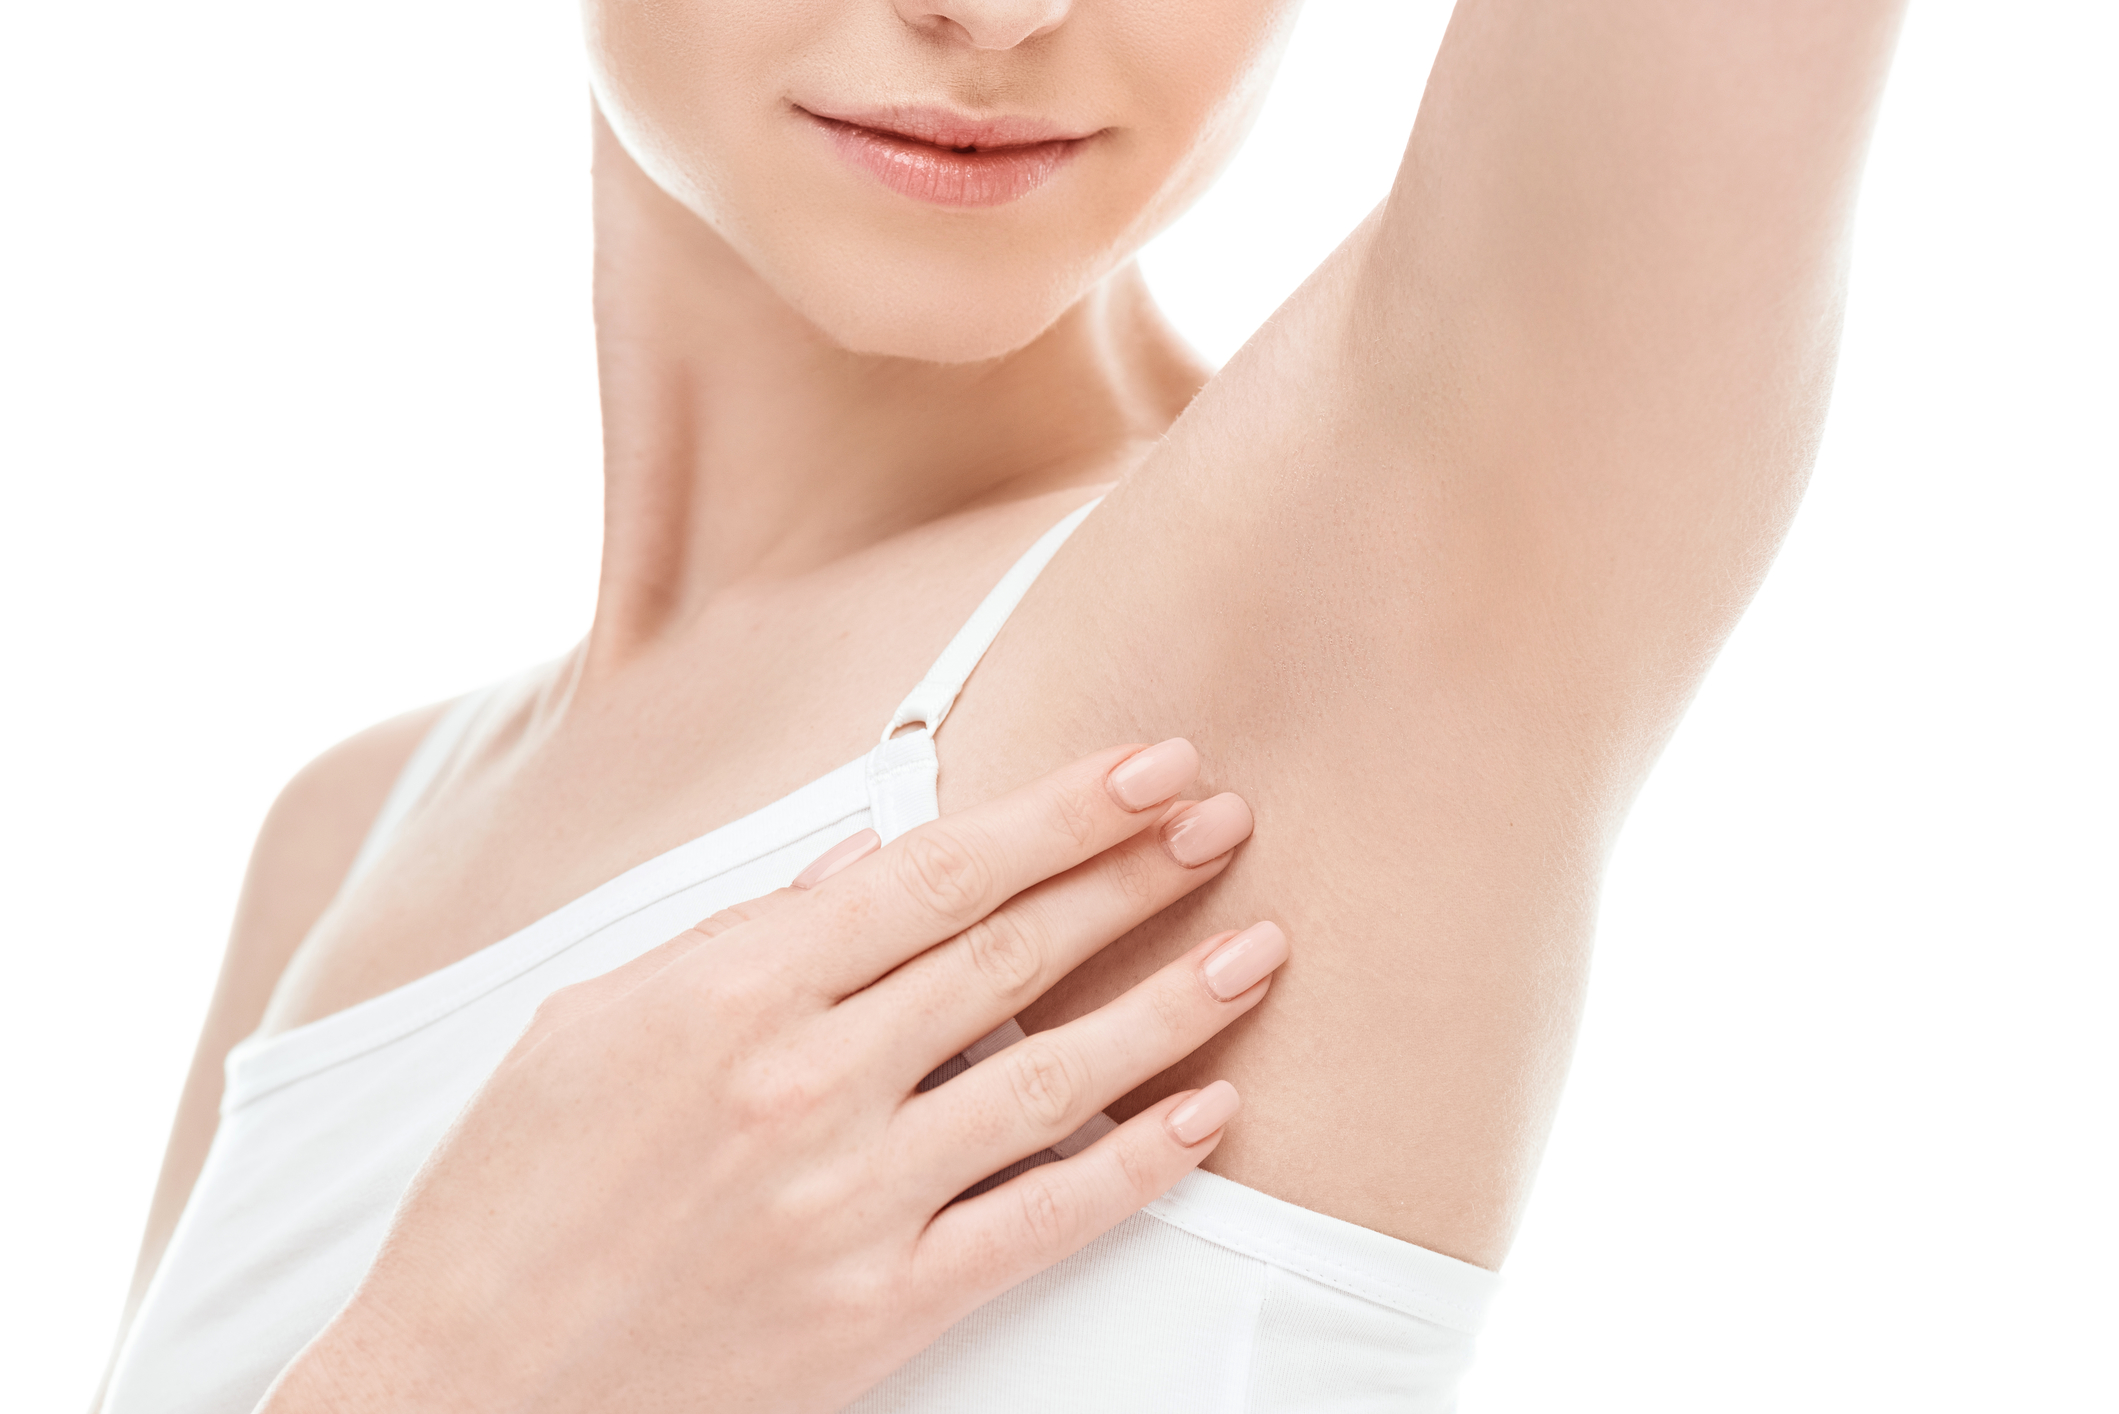 natural remedies to lighten dark armpits